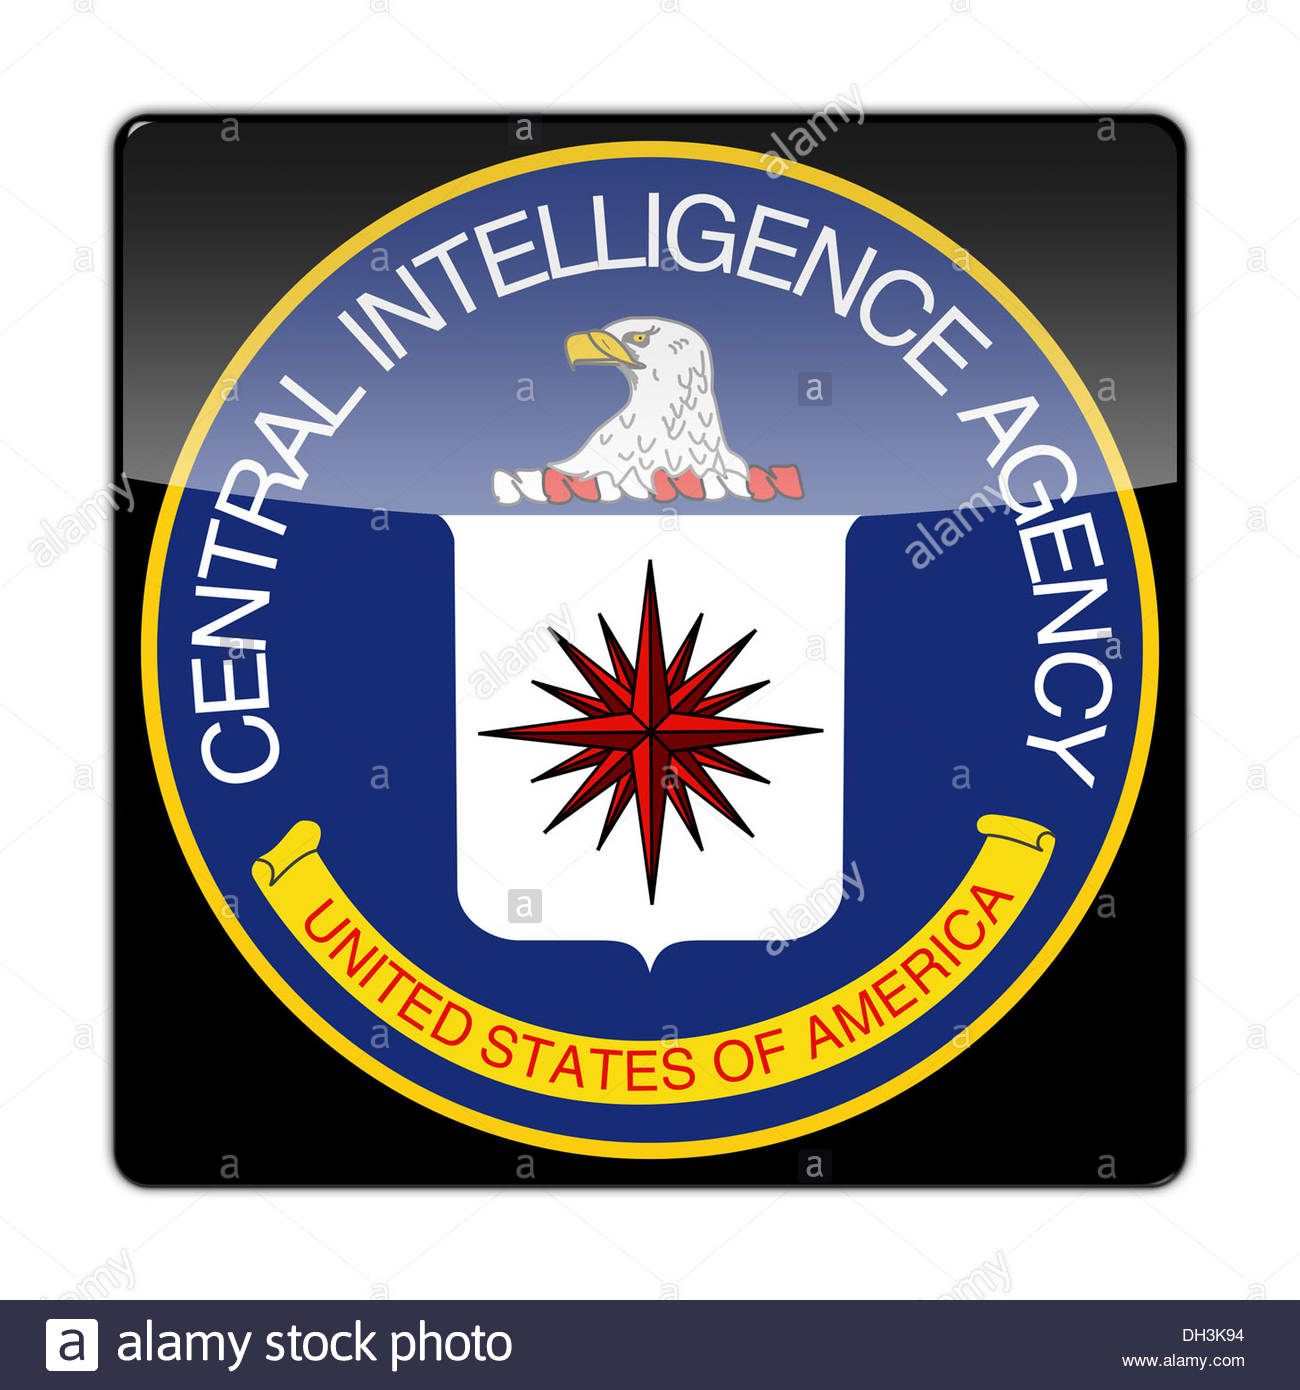 Central intelligence agency cia patch